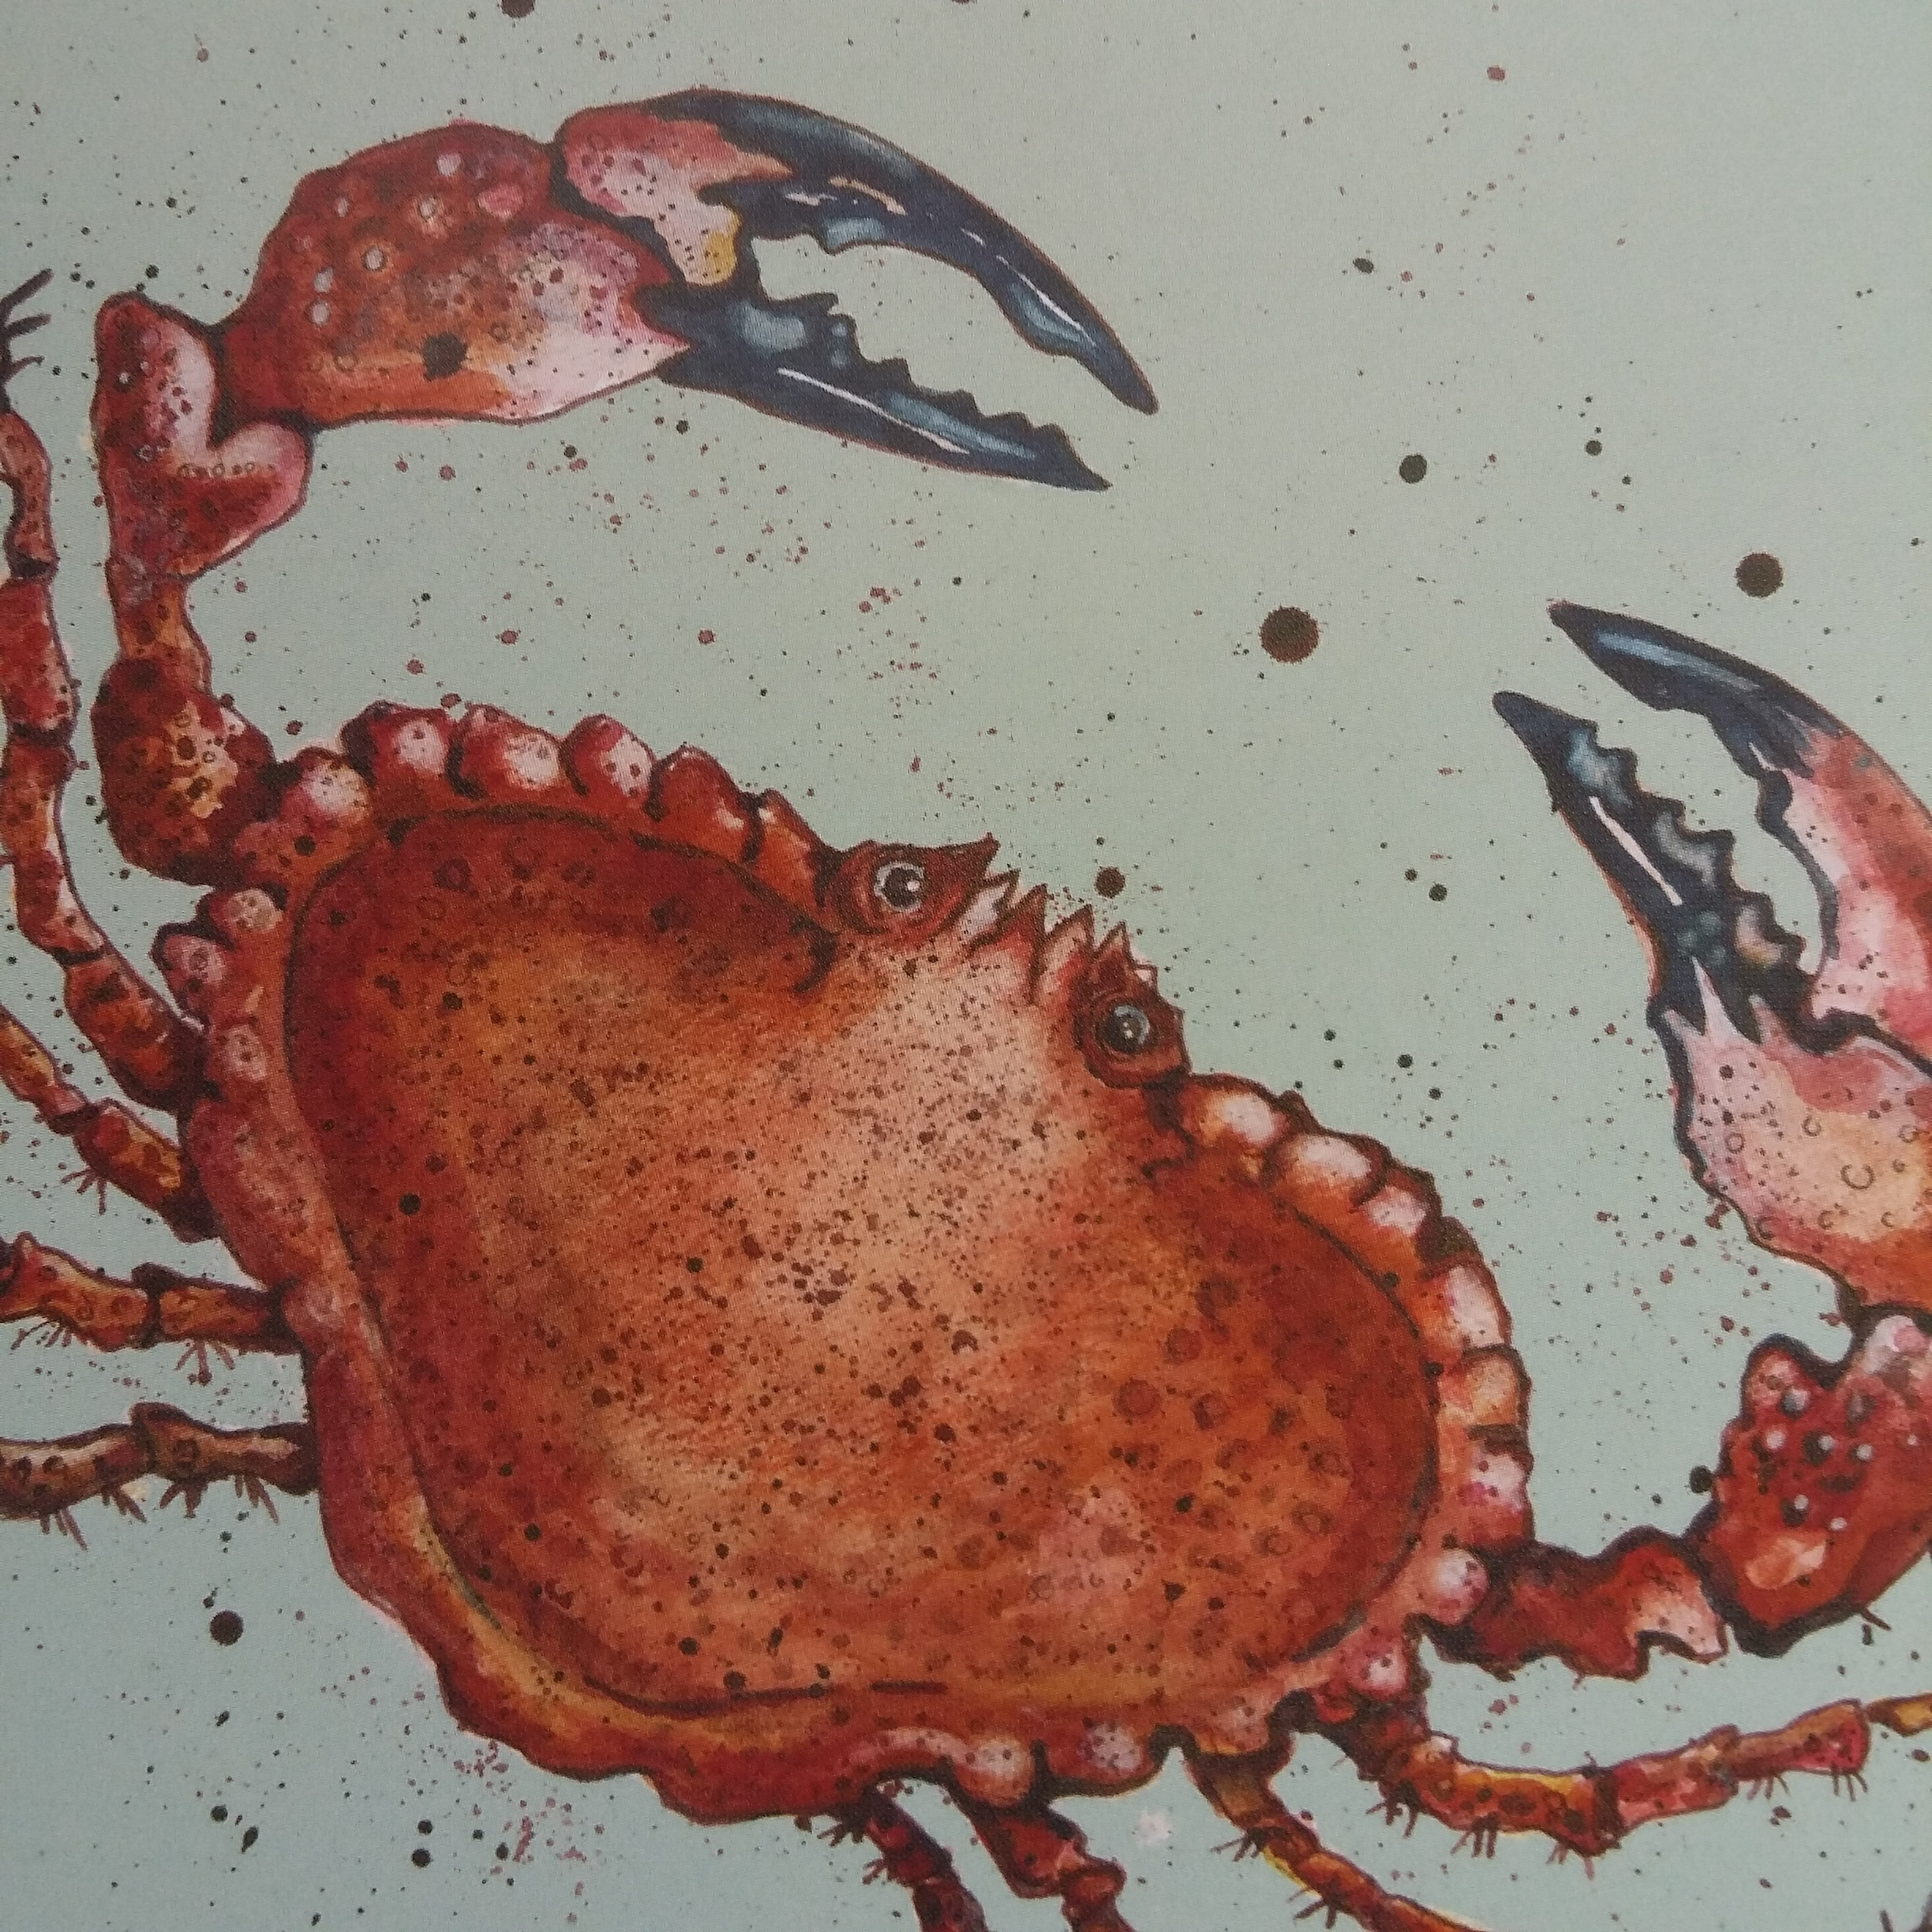 Fruits of the Sea - Crab